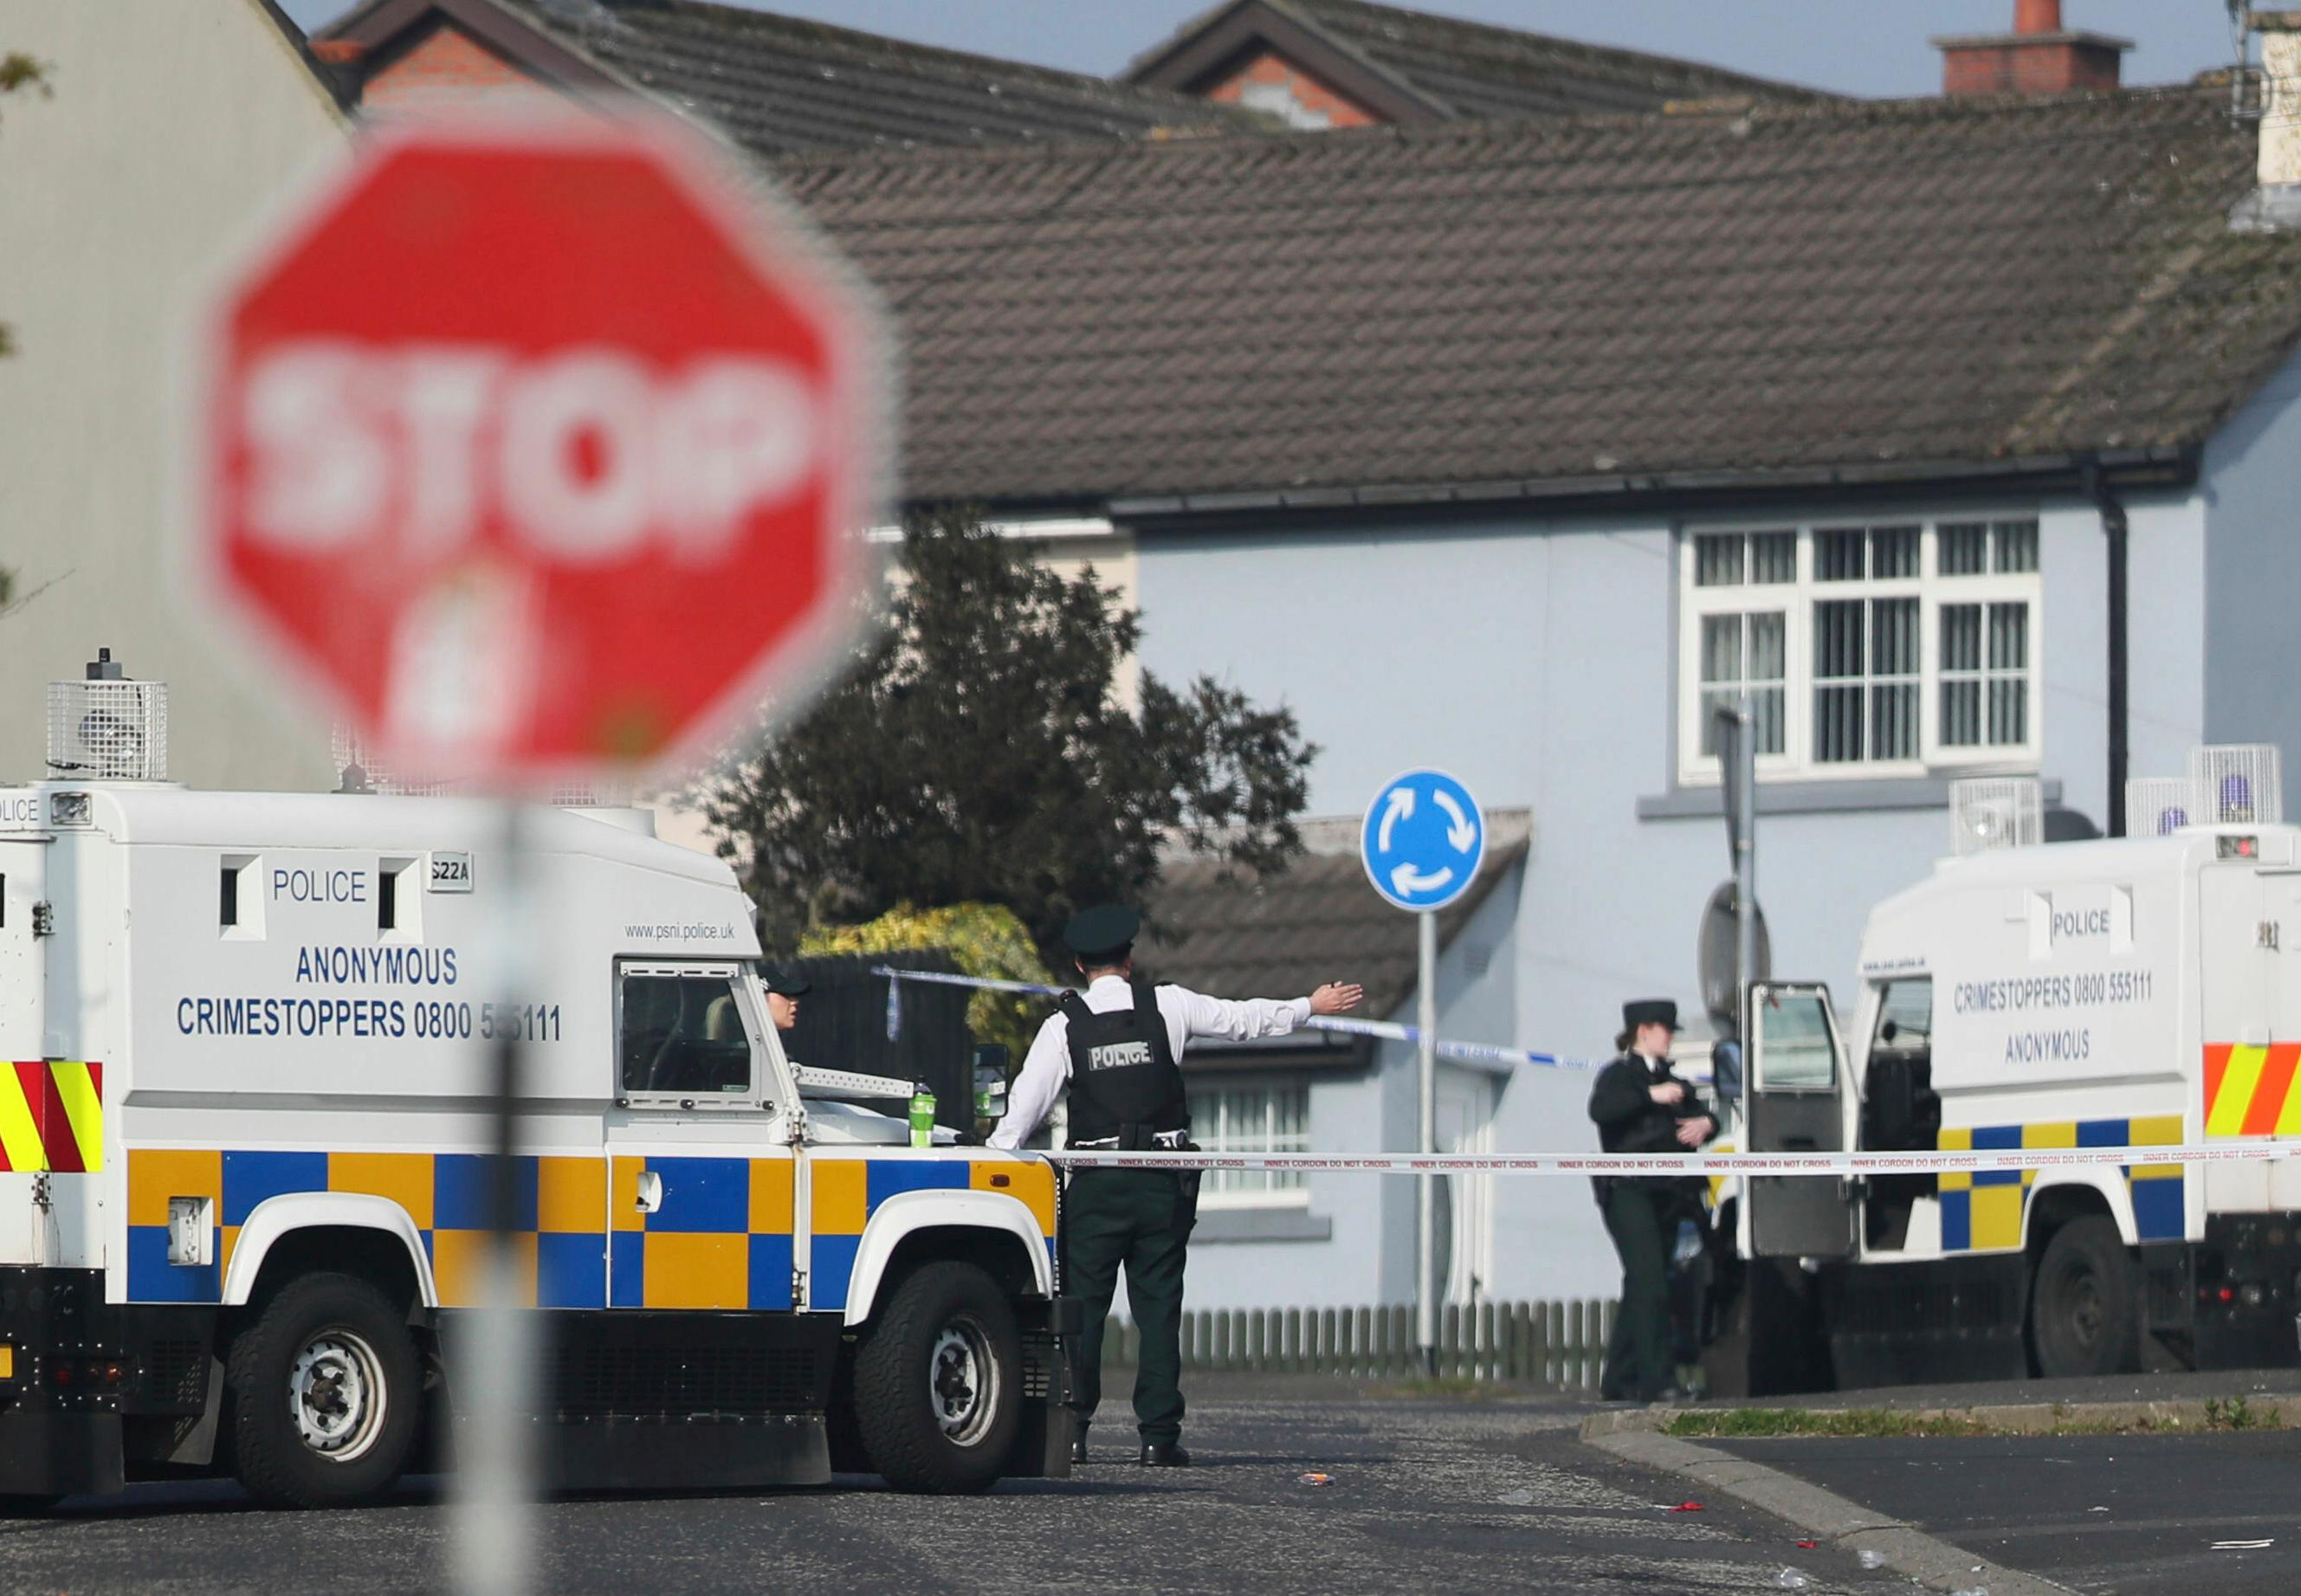 The scene in Londonderry, Northern Ireland, Friday April 19, 2019, following the death of 29-year-old journalist Lyra McKee who was shot and killed during overnight rioting.  Police in Northern Ireland said Friday the dissident republican group the New IRA was probably responsible for the fatal shooting of a journalist during overnight rioting in the city of Londonderry. (Brian Lawless/PA via AP)